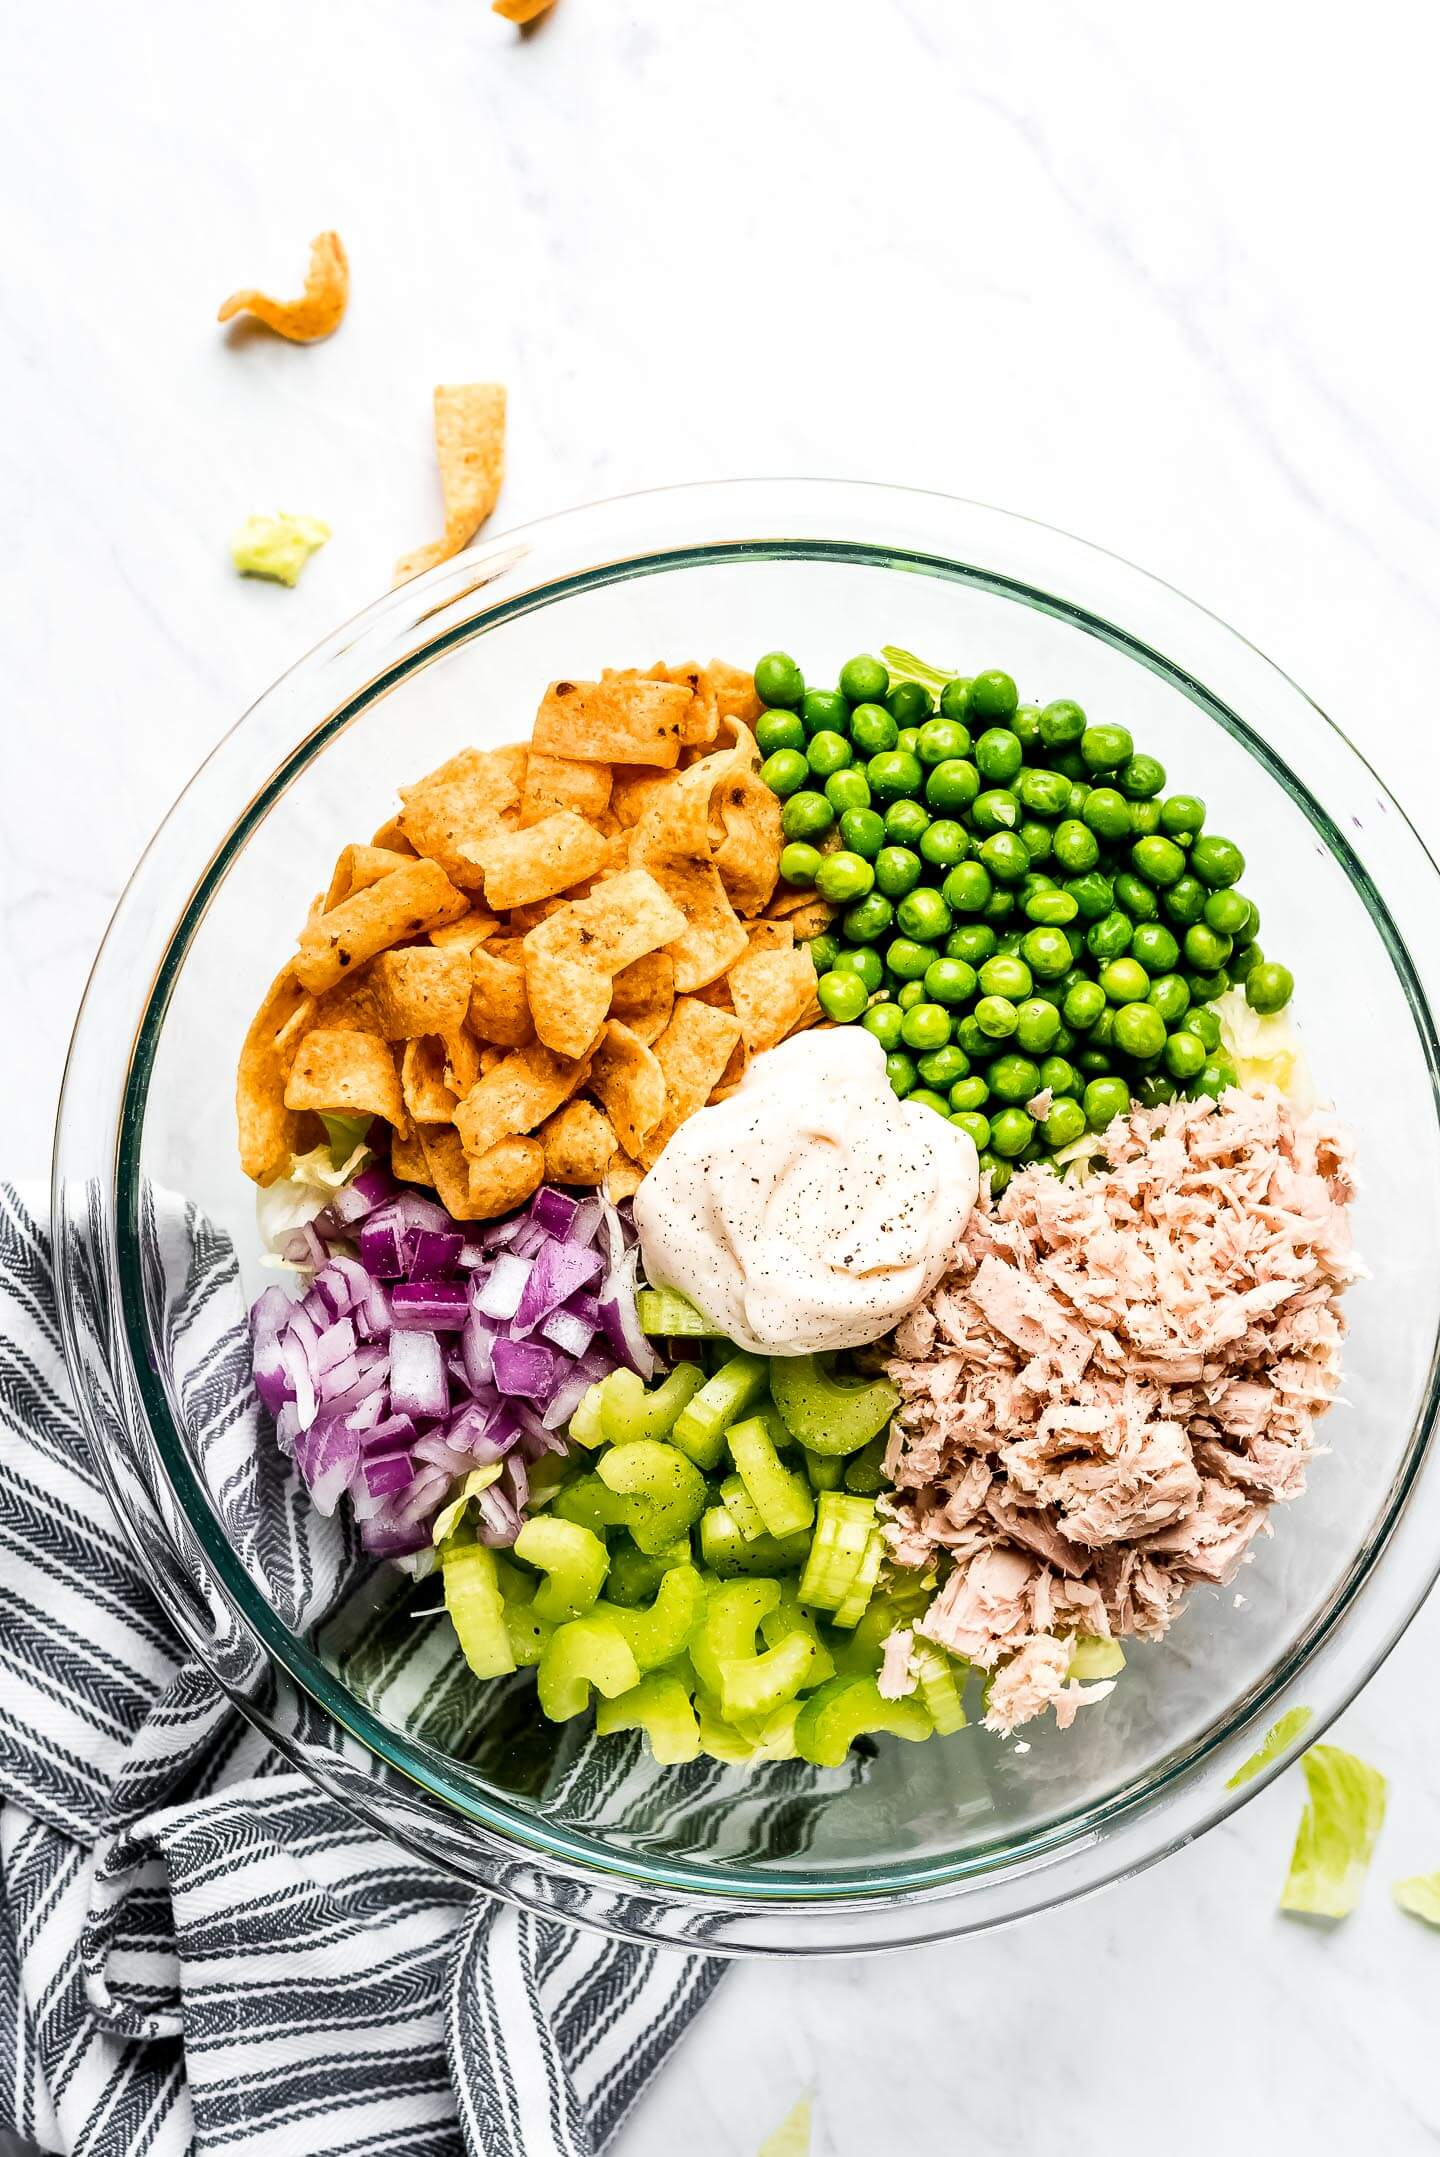 A large mixing bowl with piles of ingredients- Fritos, green peas, tuna fish, celery, and red onion.